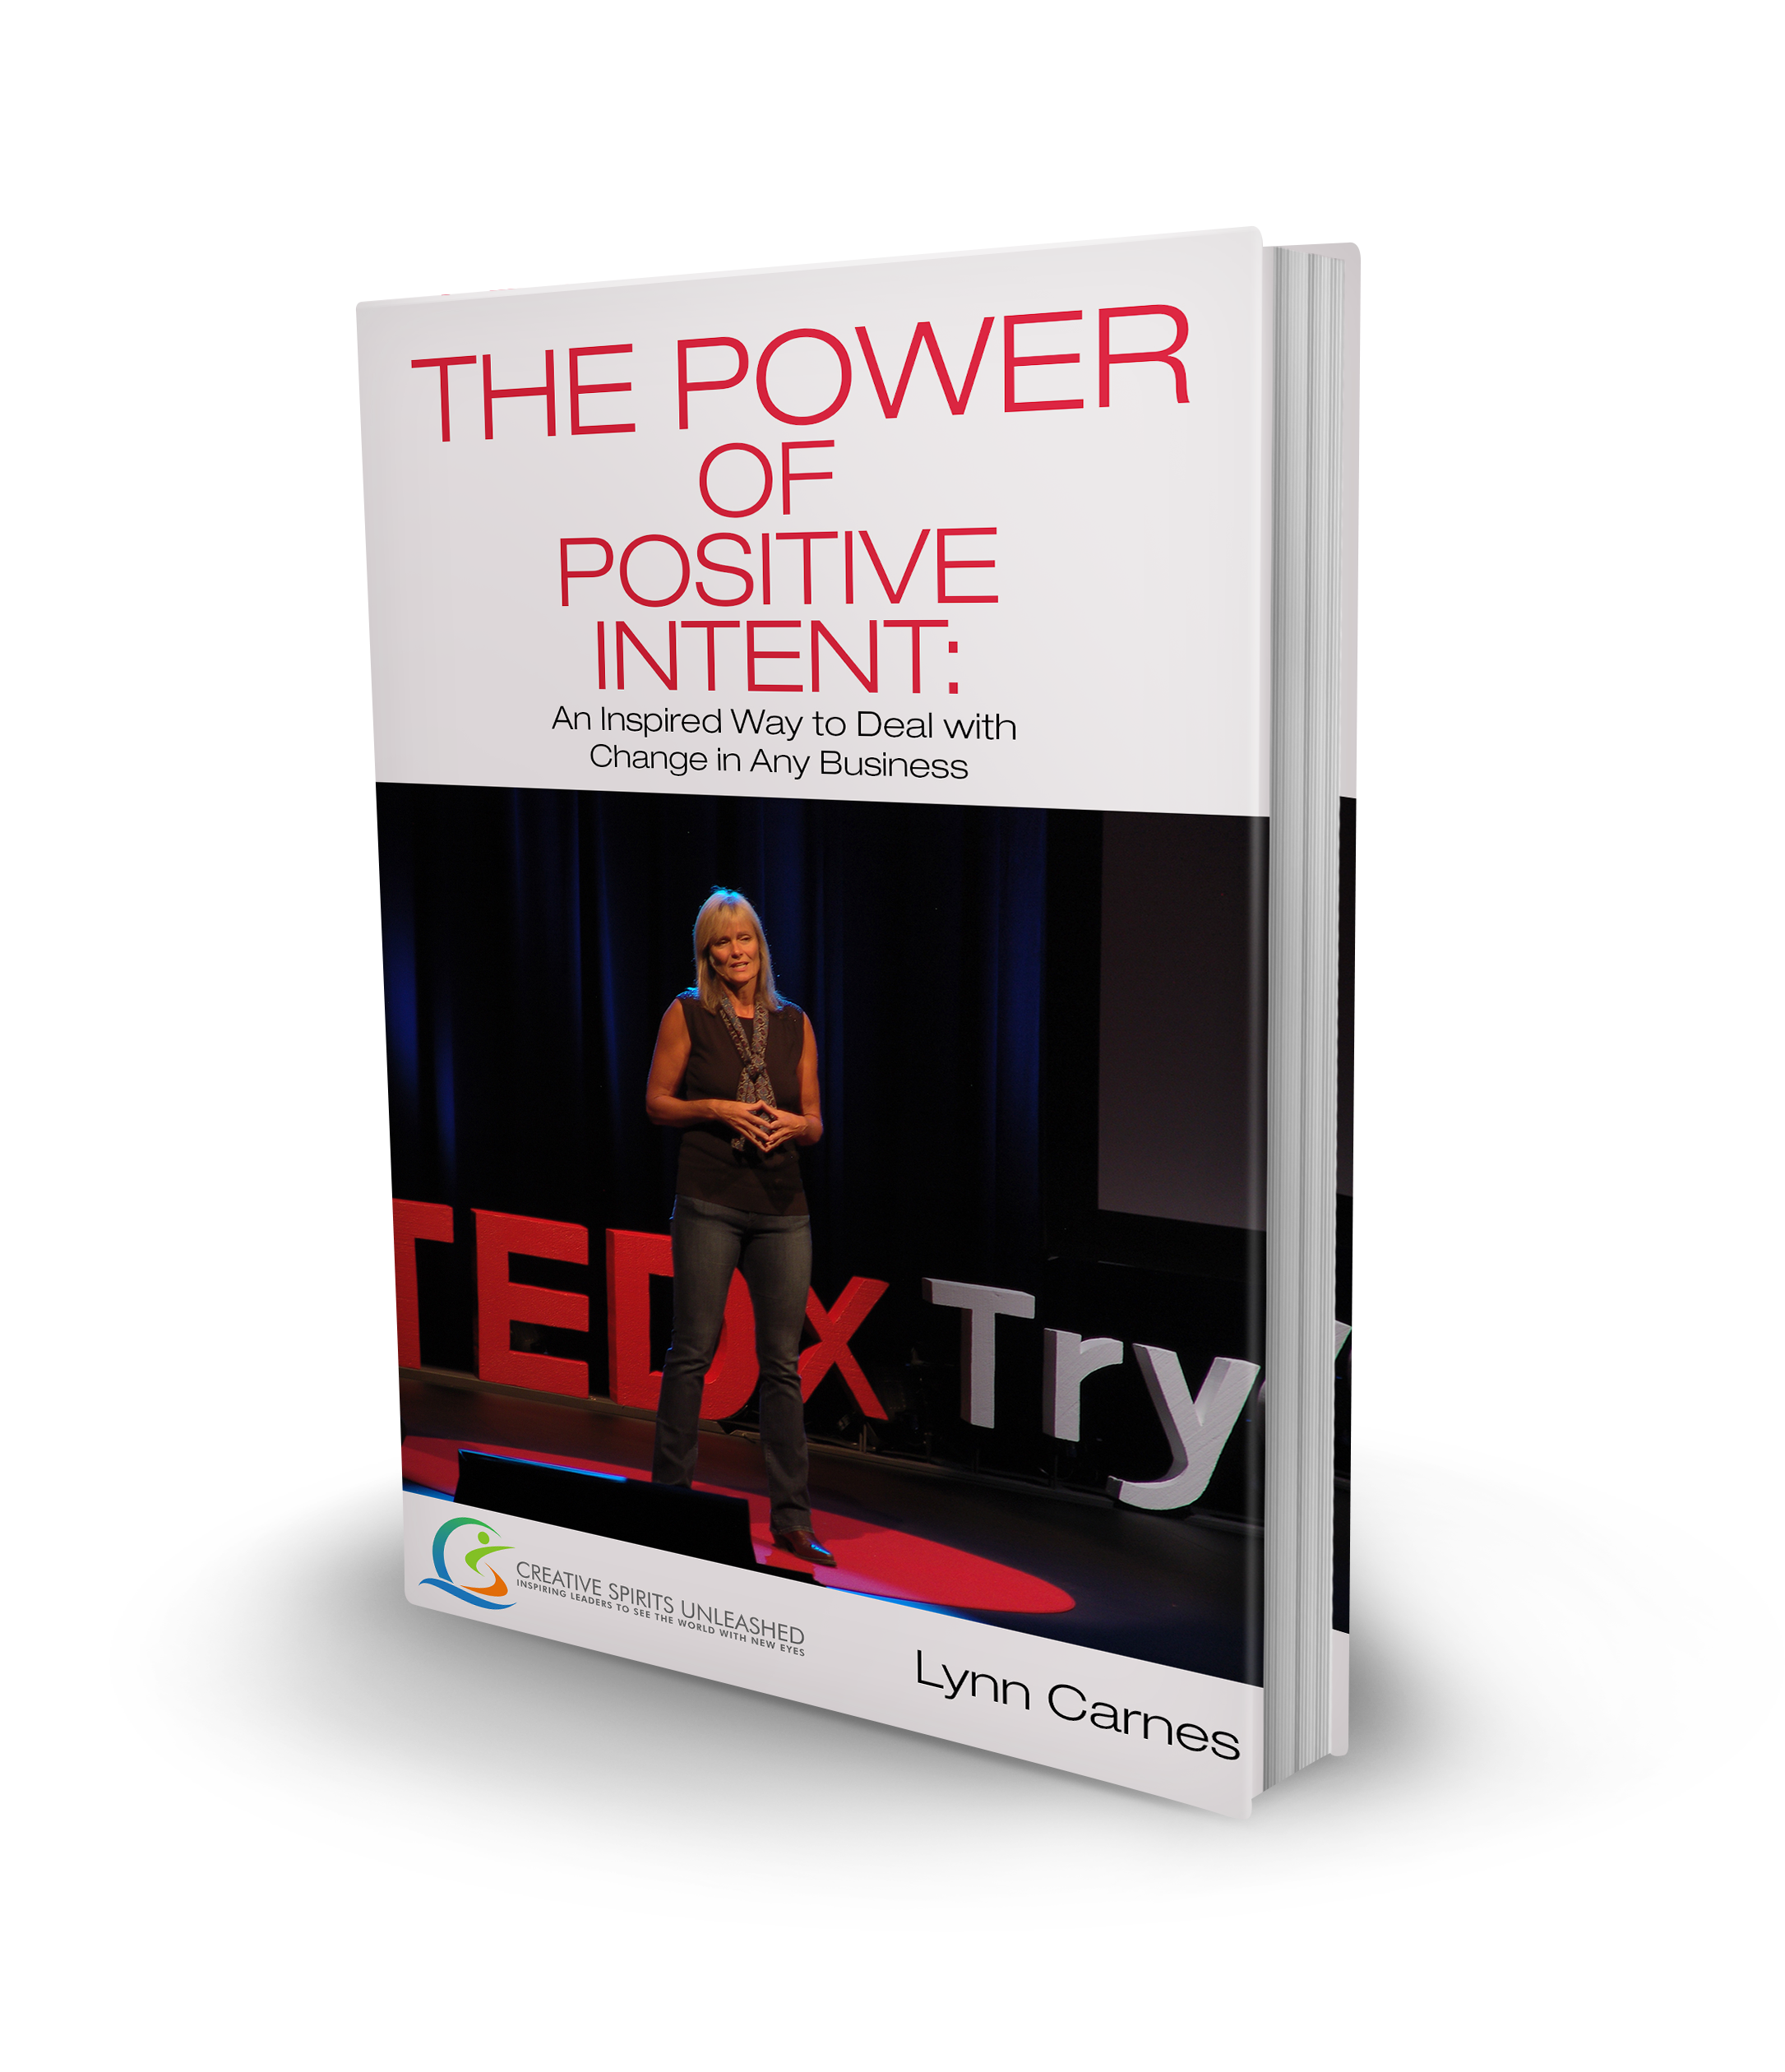 Lynn Carnes, The Power of Positive Intent